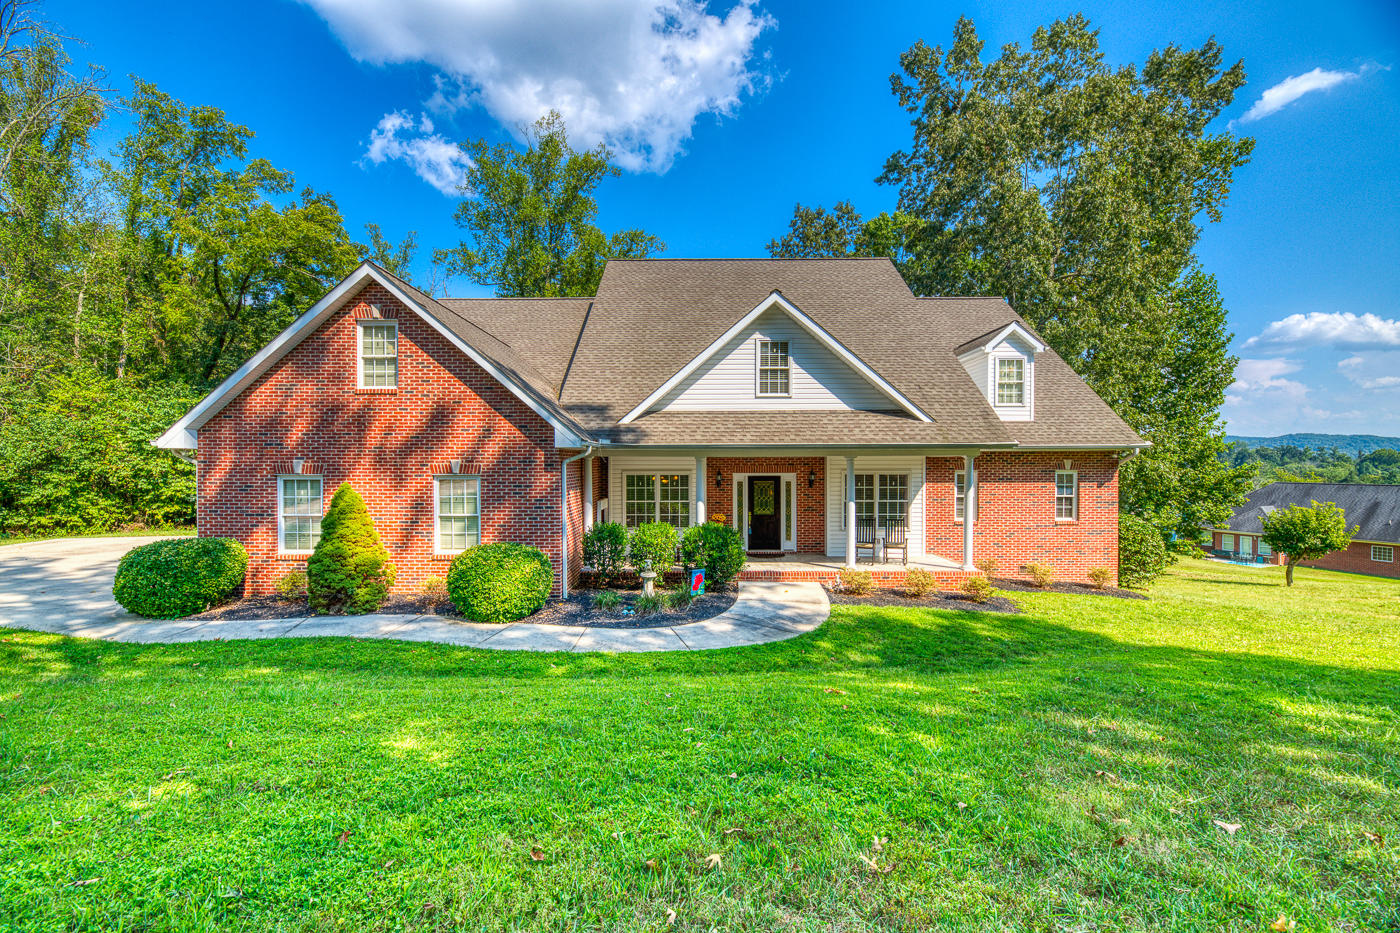 20190913155006866409000000-o Clinton anderson county homes for sale